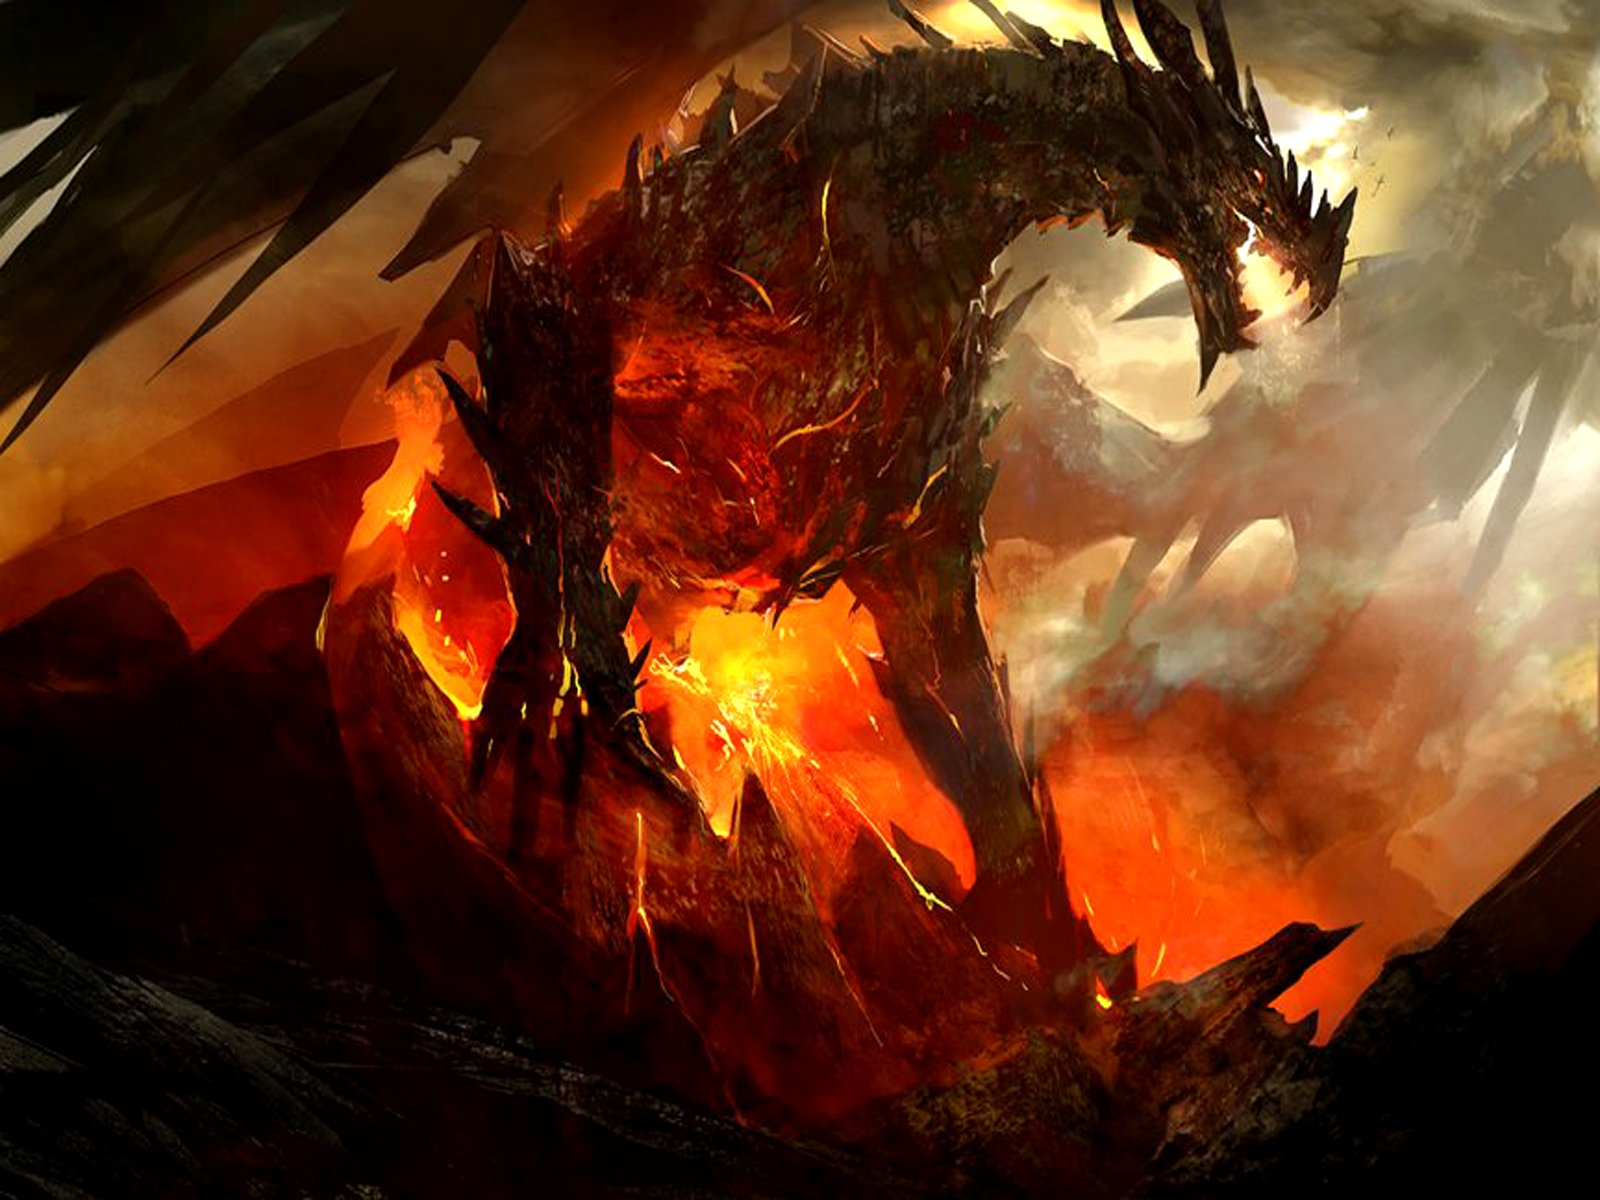 dragon background image dragon desktop wallpapers dragon hd wallpapers 1600x1200